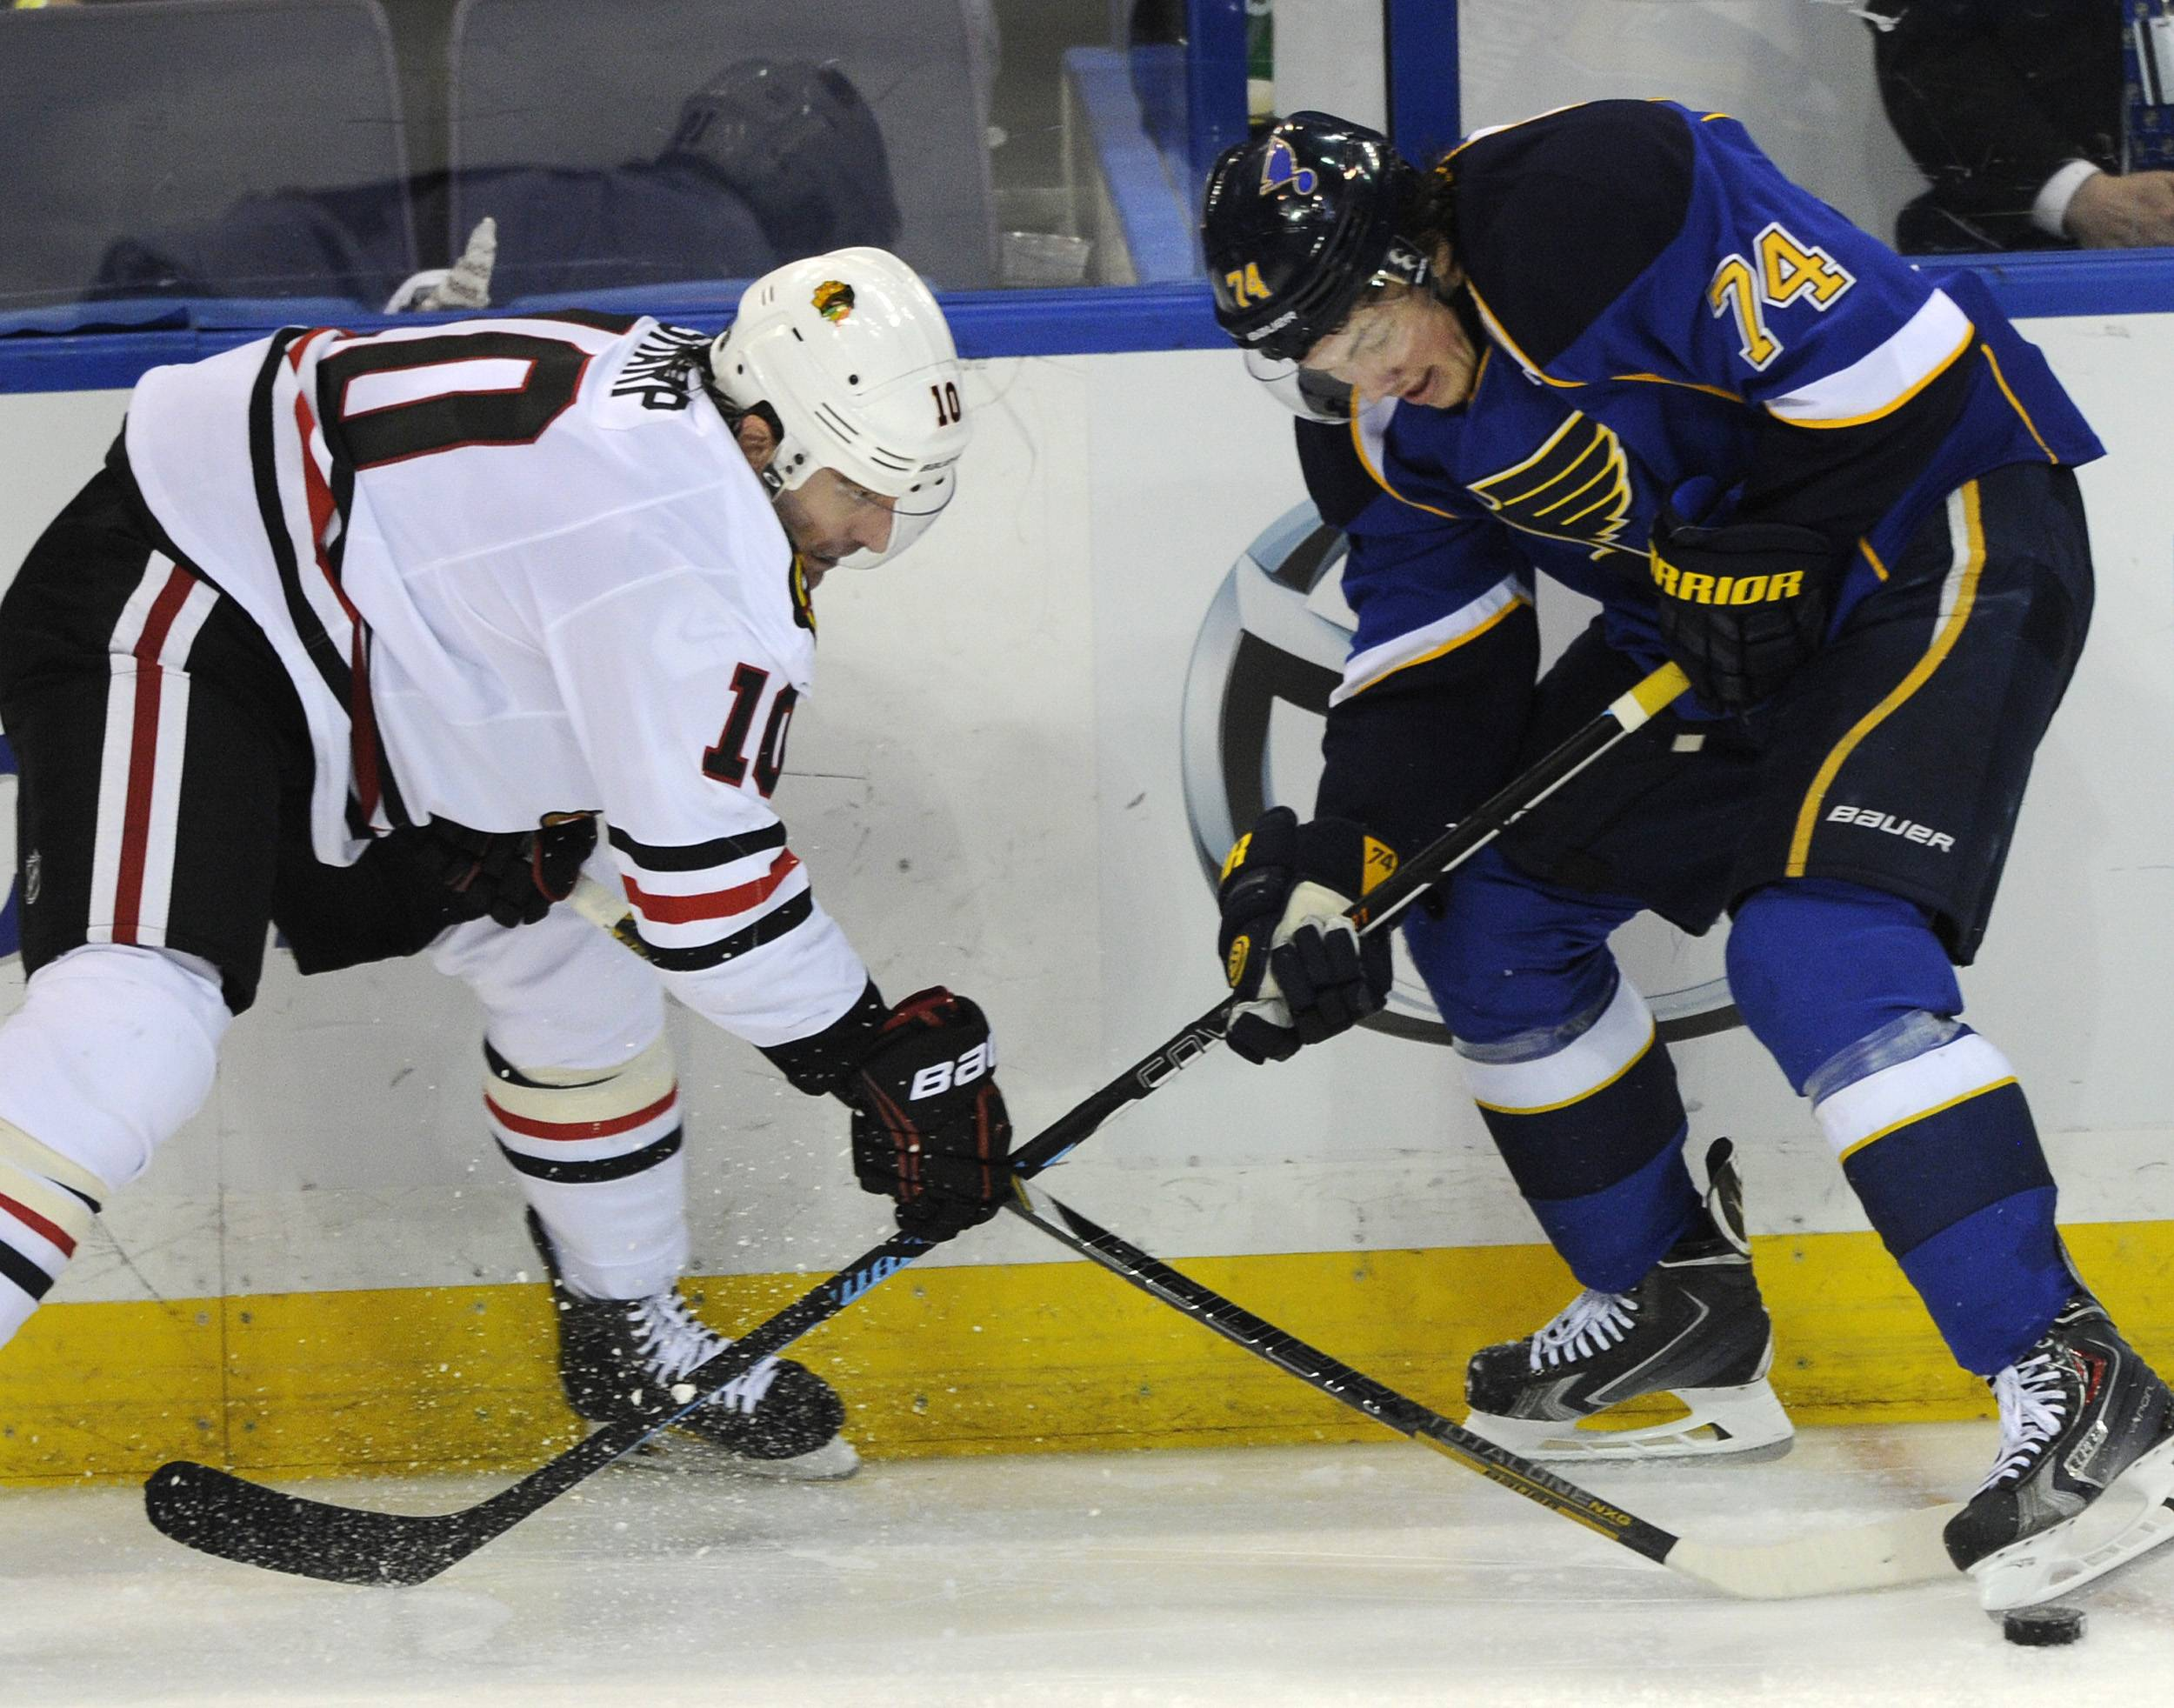 St. Louis Blues' T.J. Oshie (74) and the Blackhawks' Patrick Sharp (10) reach for the puck during Game 2 of a first-round NHL hockey playoff series on Saturday in St. Louis. St. Louis won 4-3 in overtime, taking a 2-0 lead in the series.